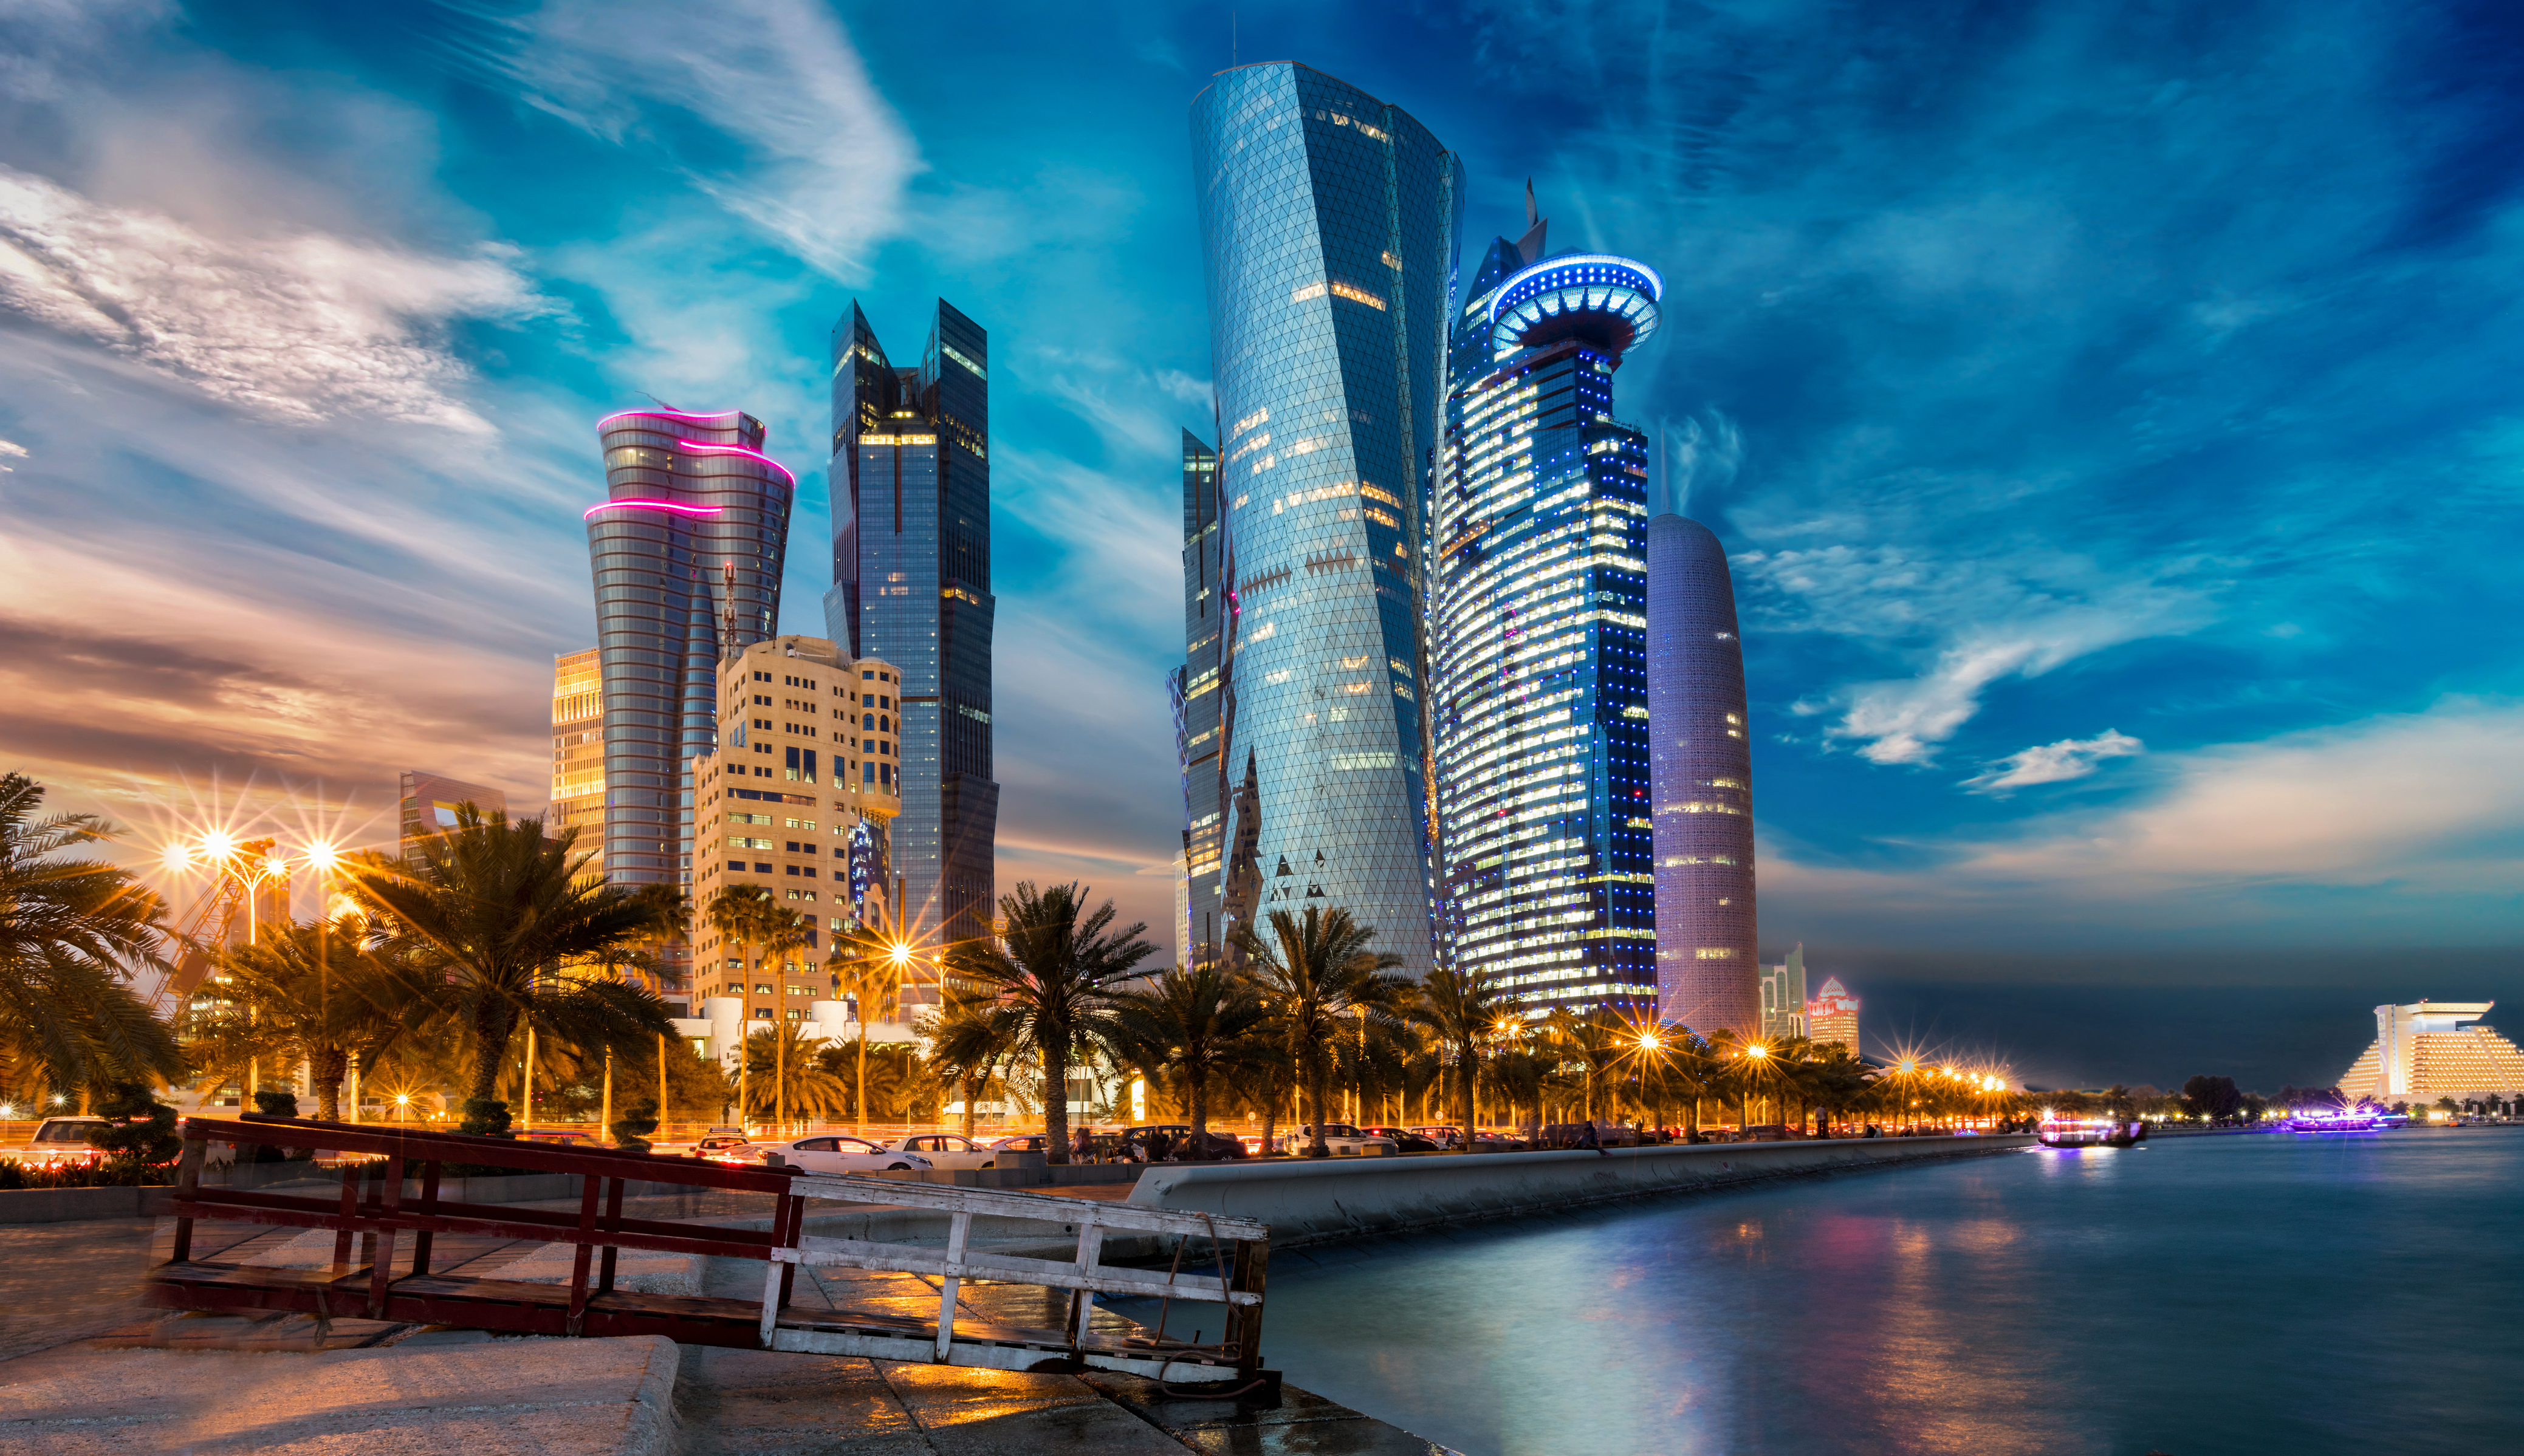 Check out the hotel project pipeline in Doha